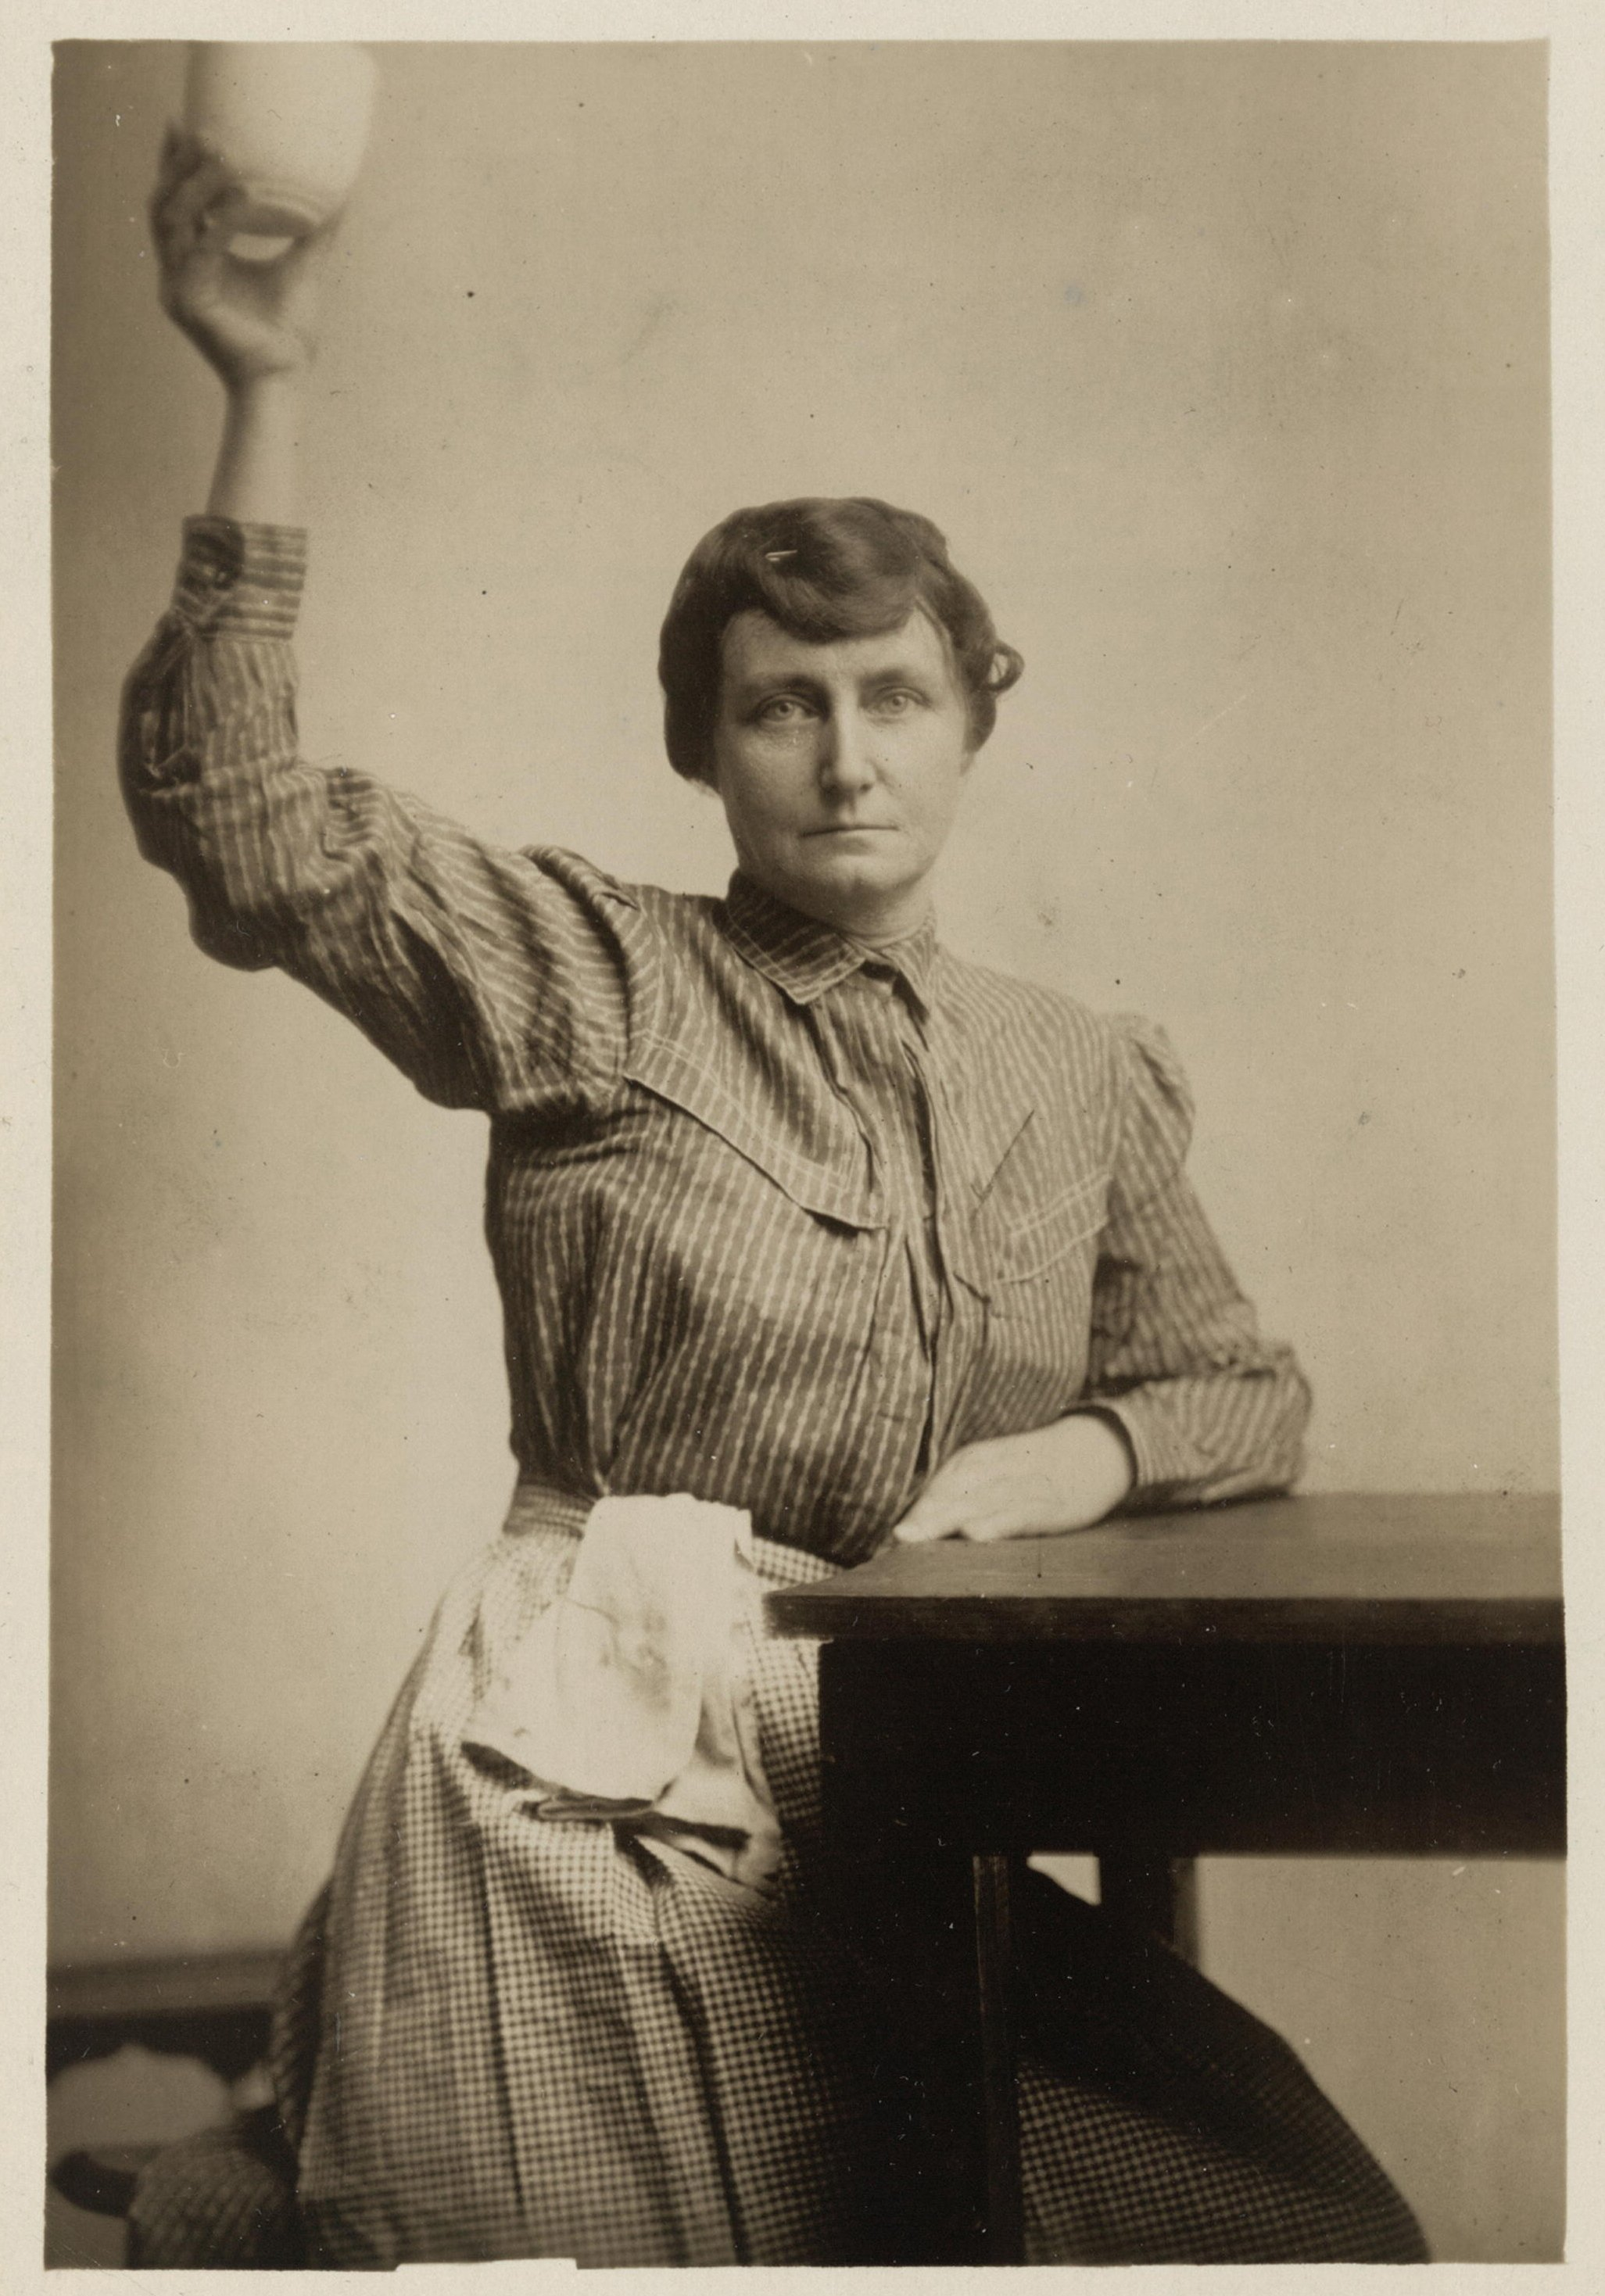 Pauline Adams, an Irish immigrant and suffragist, is pictured in her prison garb. She later became a lawyer. Library of Congress.